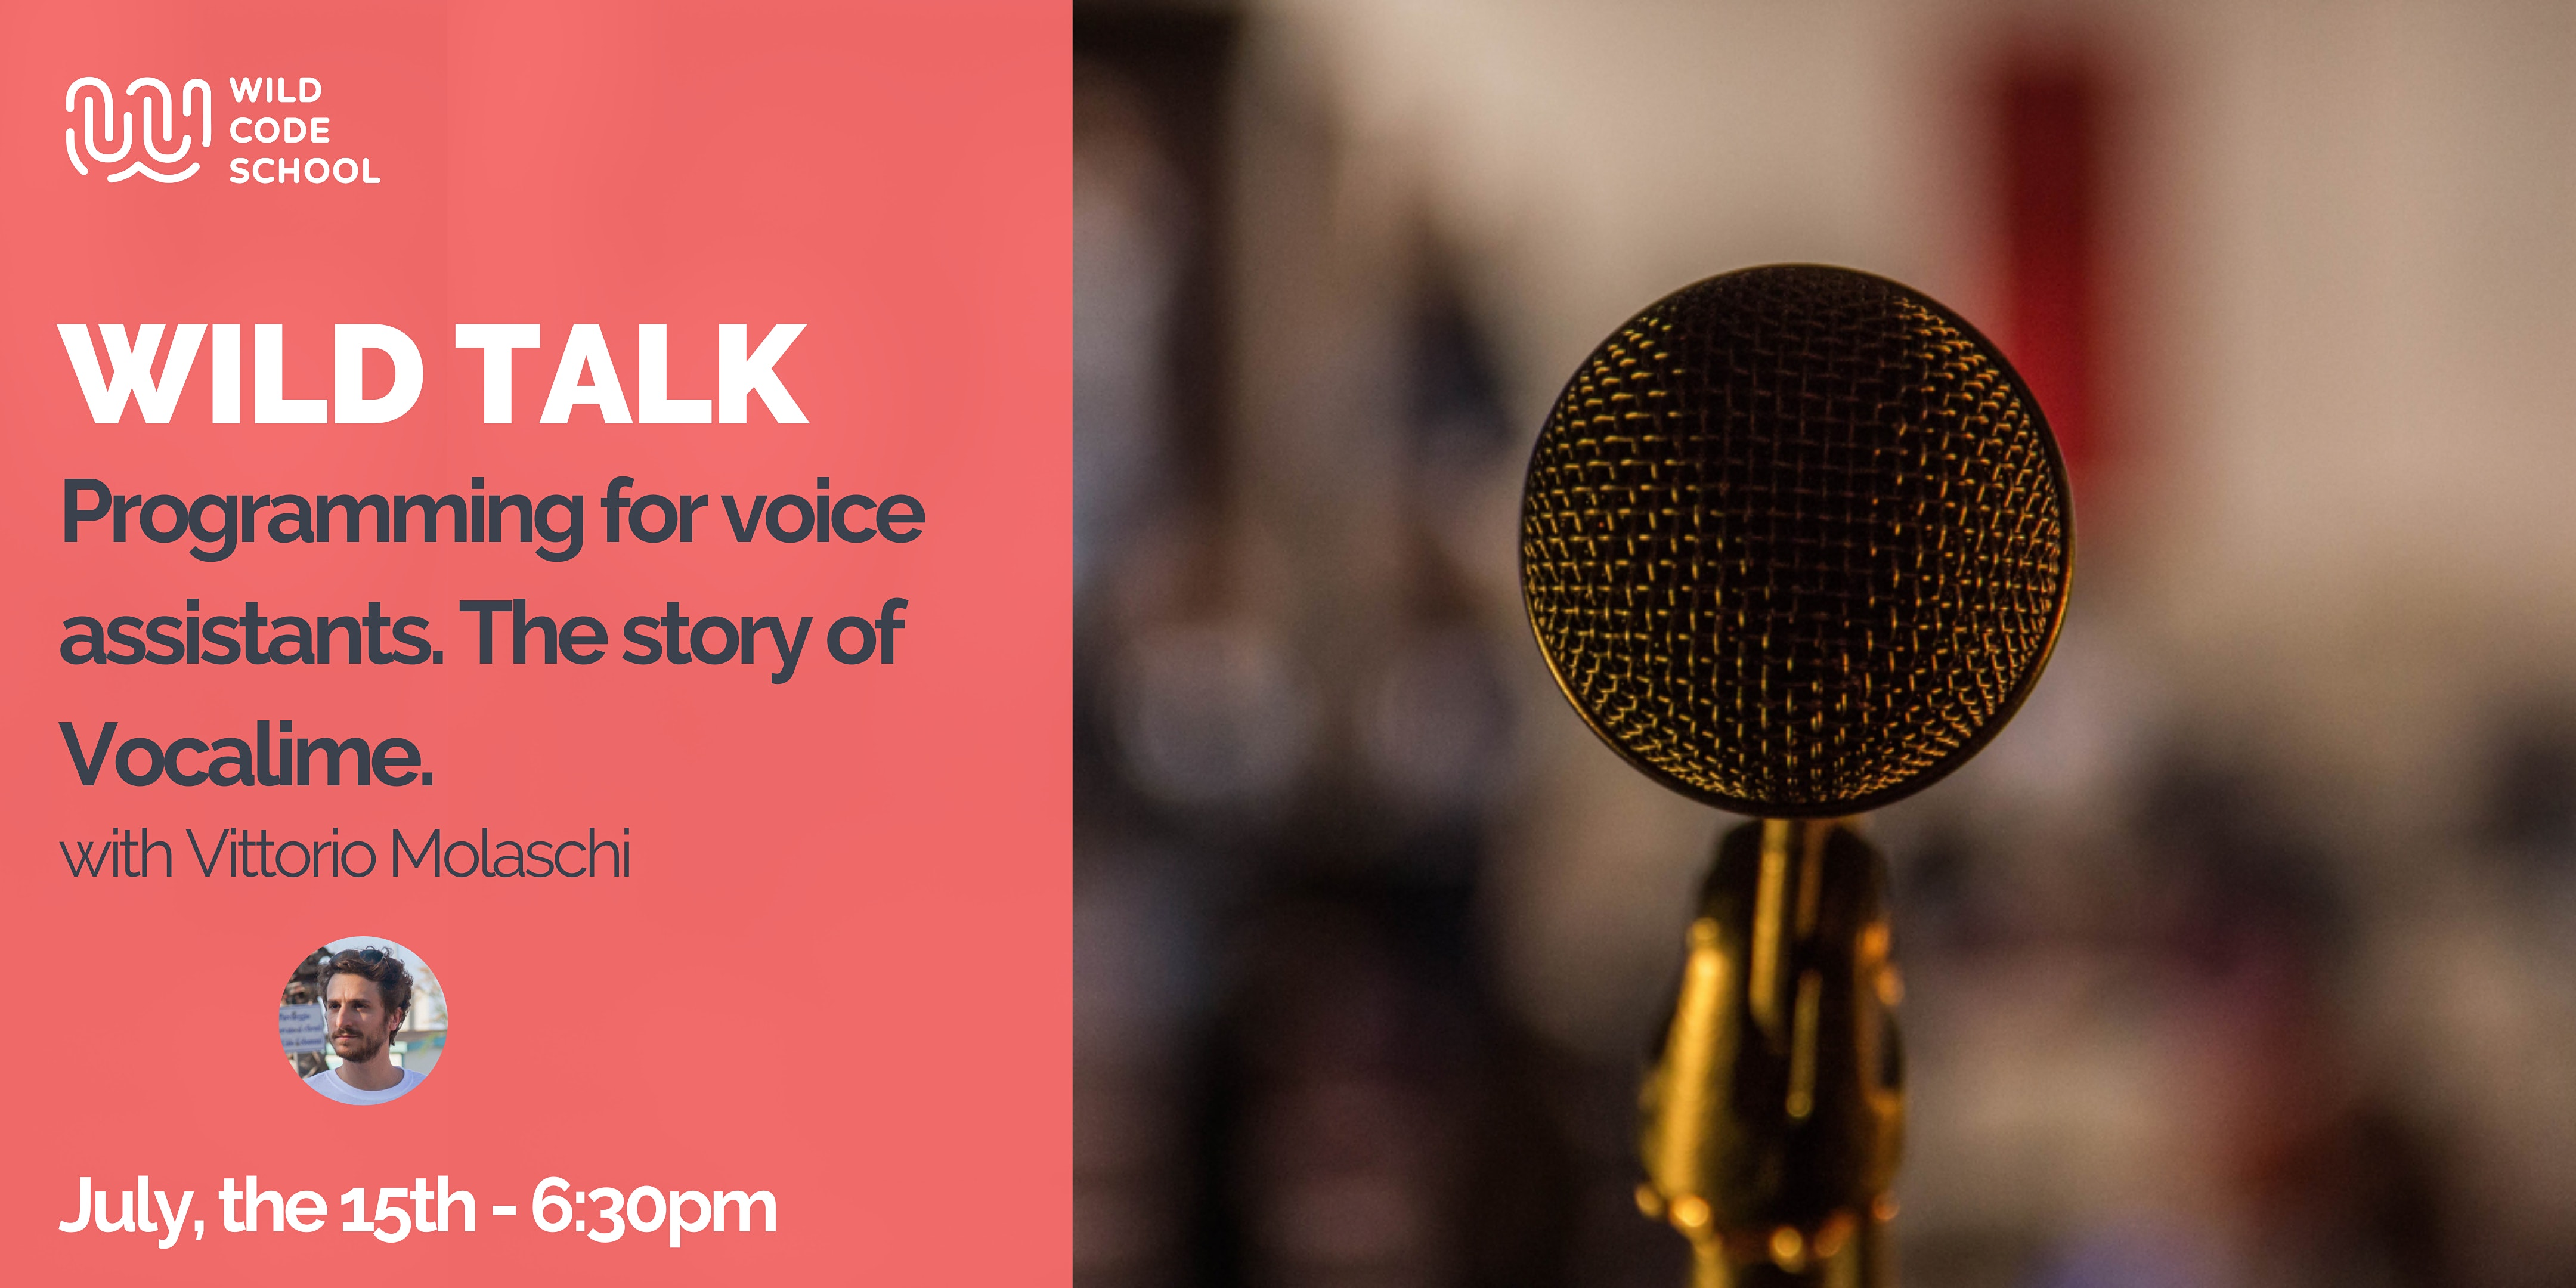 Wild Talk - Programming for voice assistants. The story of Vocalime.